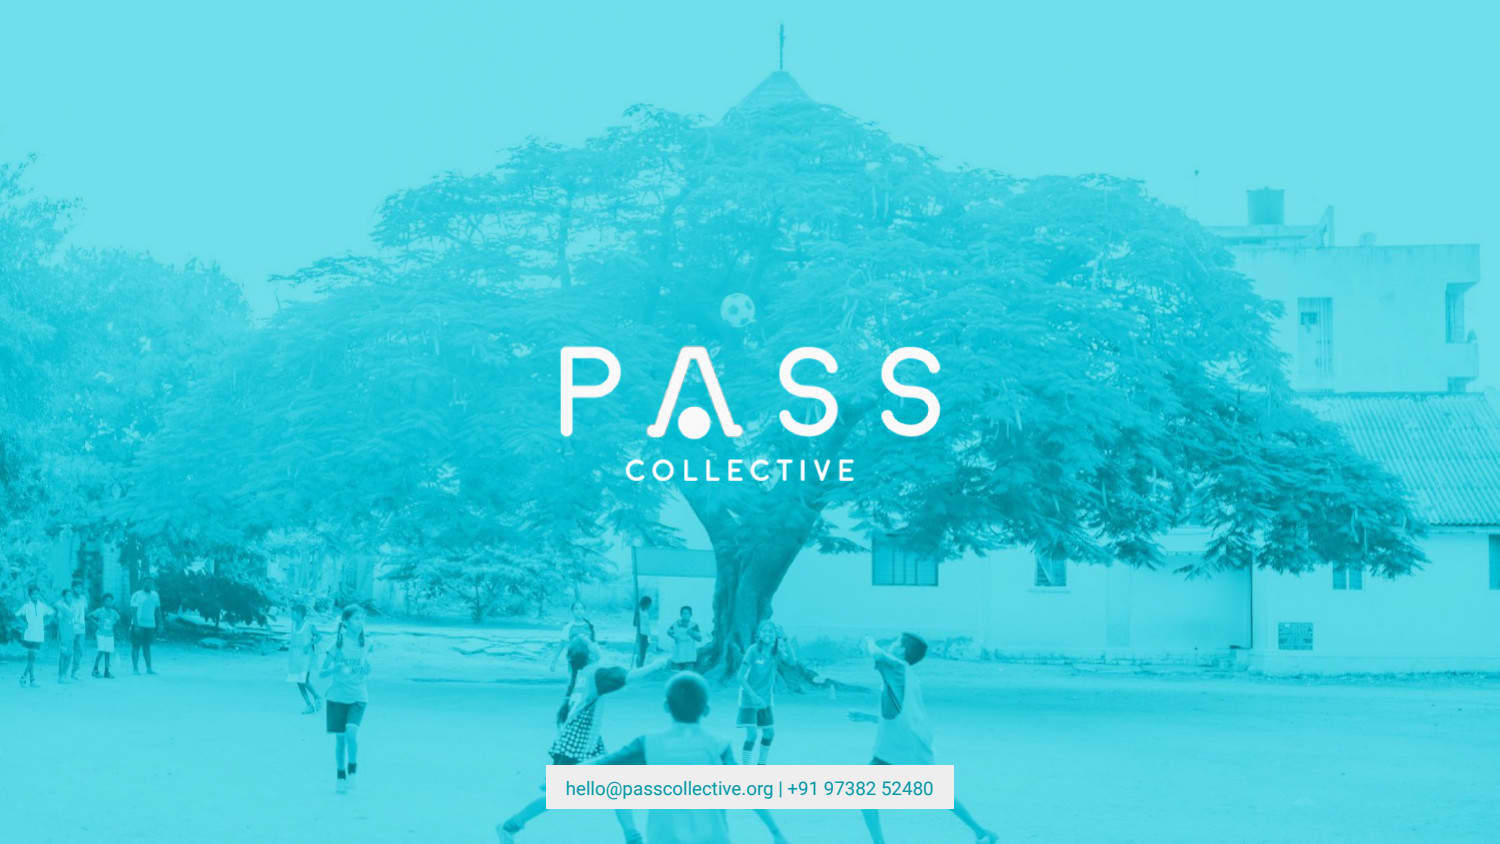 PASS Collective